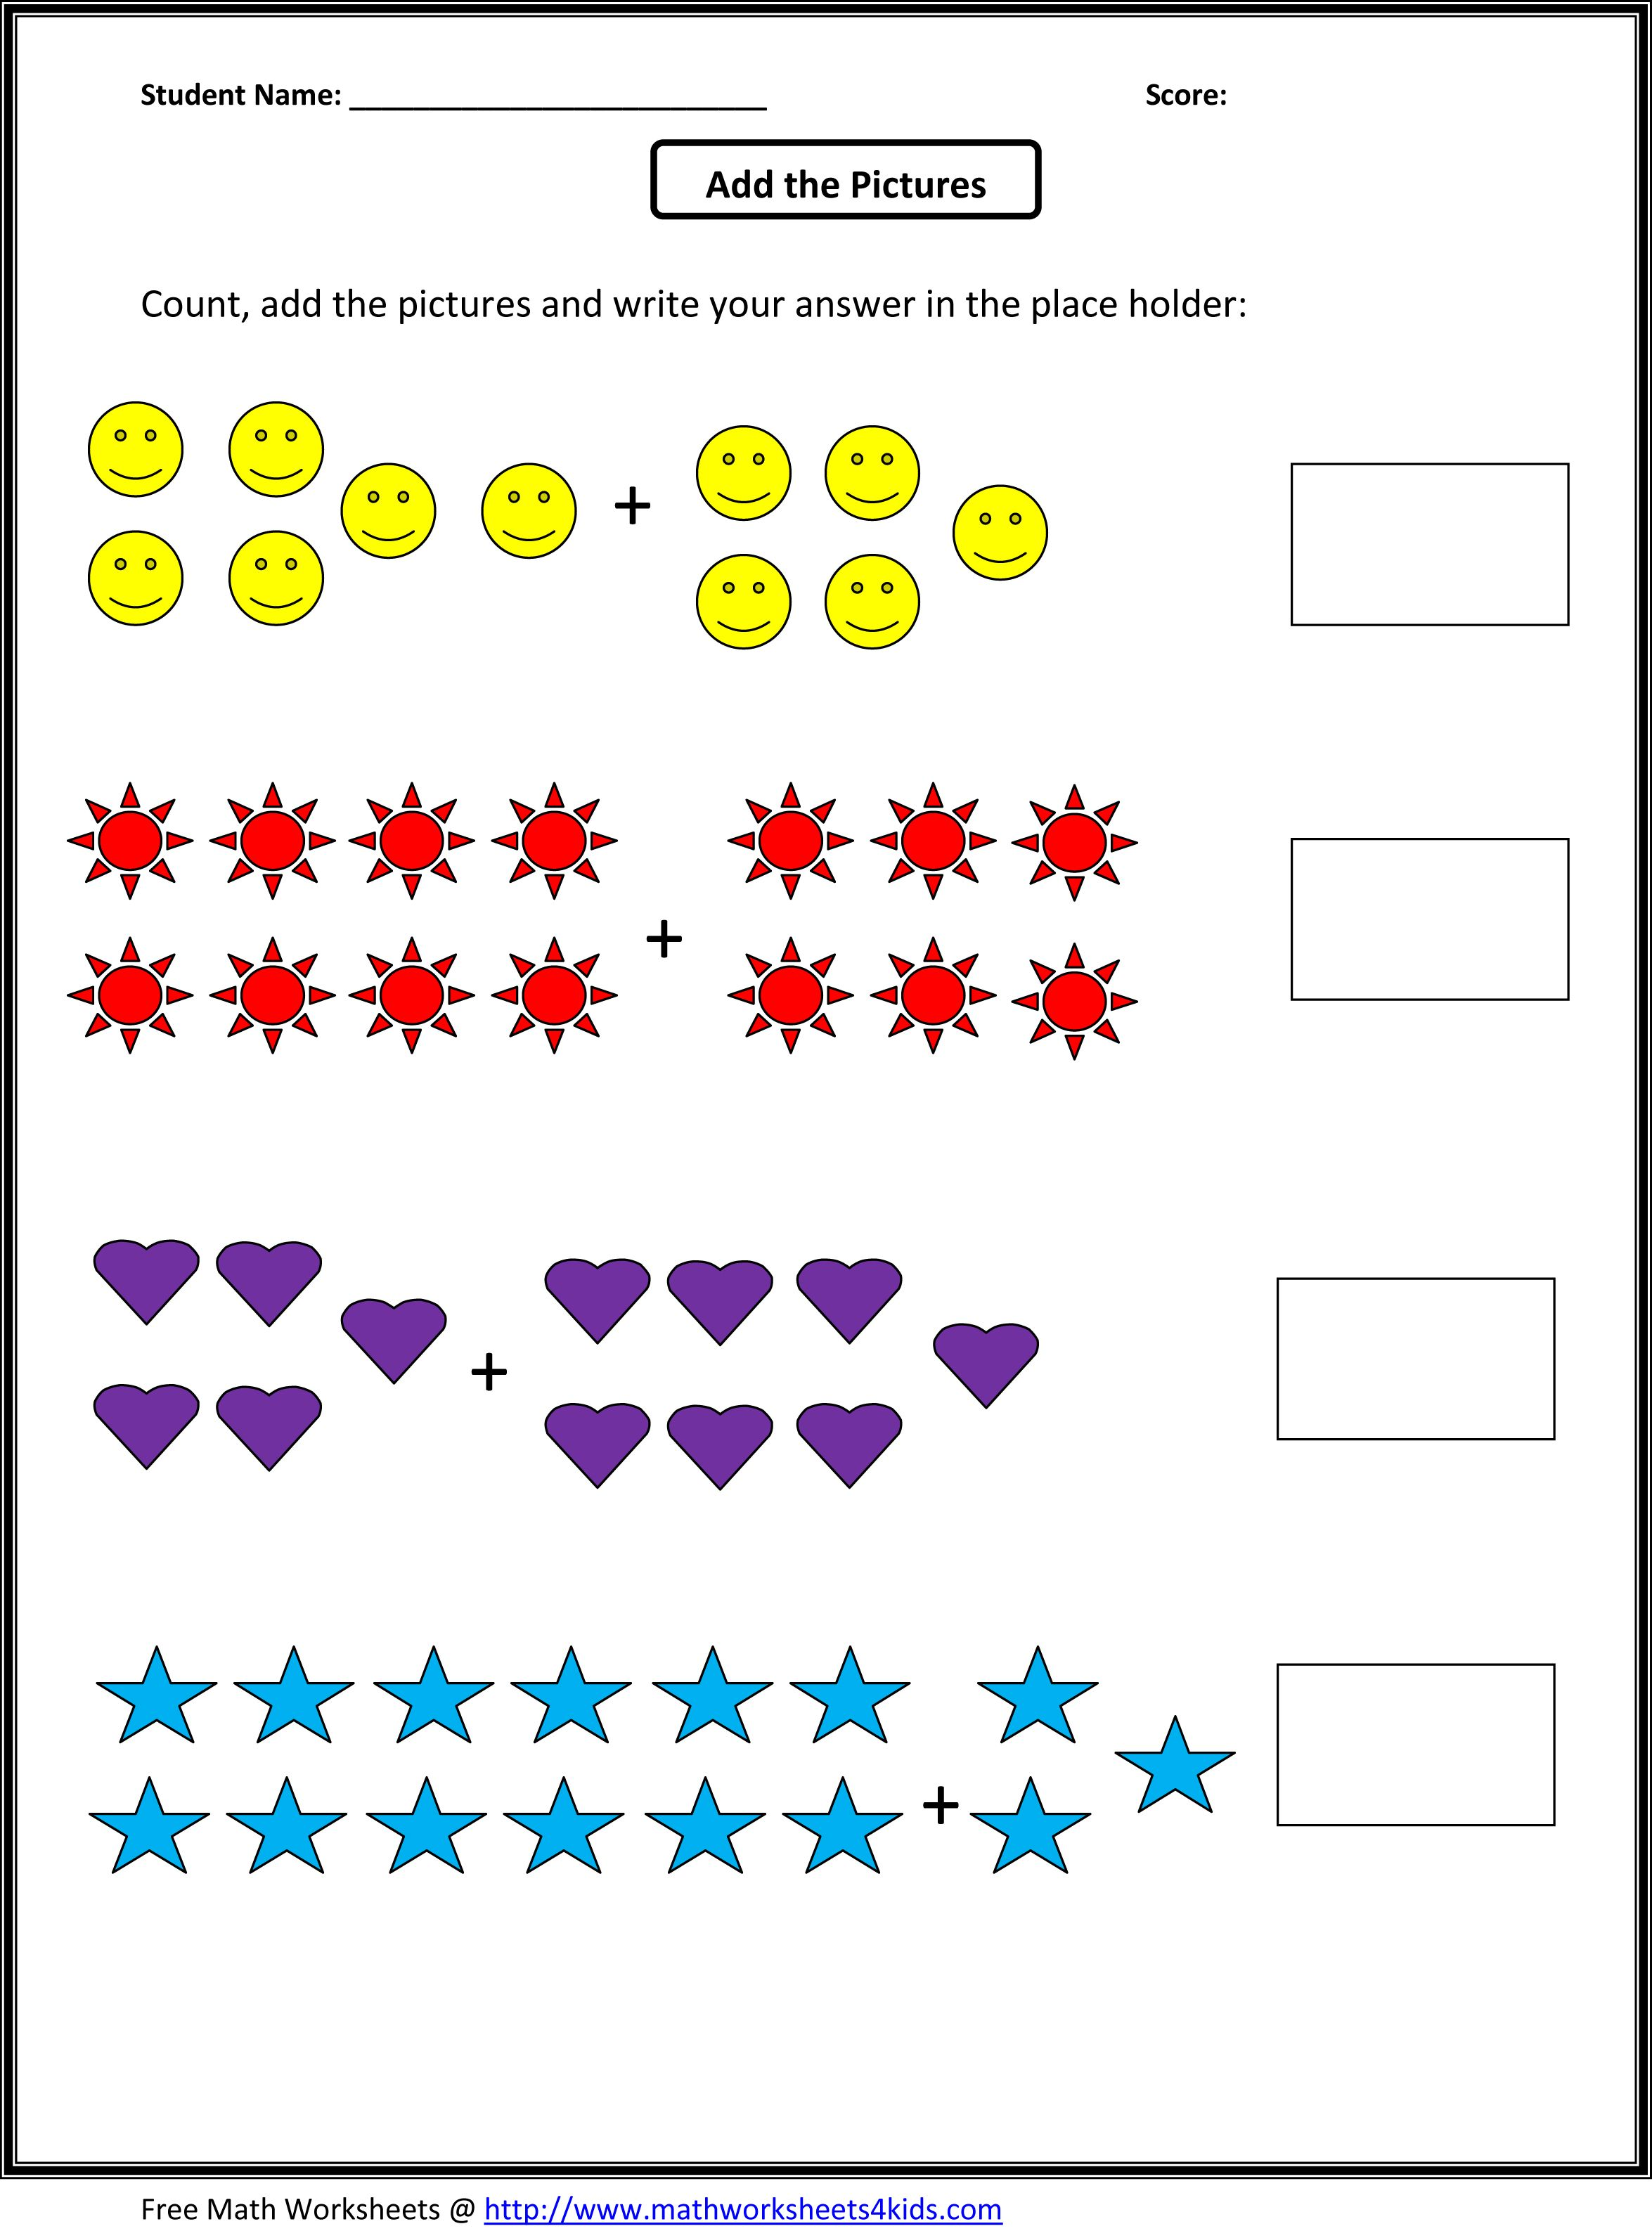 Worksheet Math 1 Grade 17 best images about 1 grade math on pinterest count first worksheets and fun worksheets